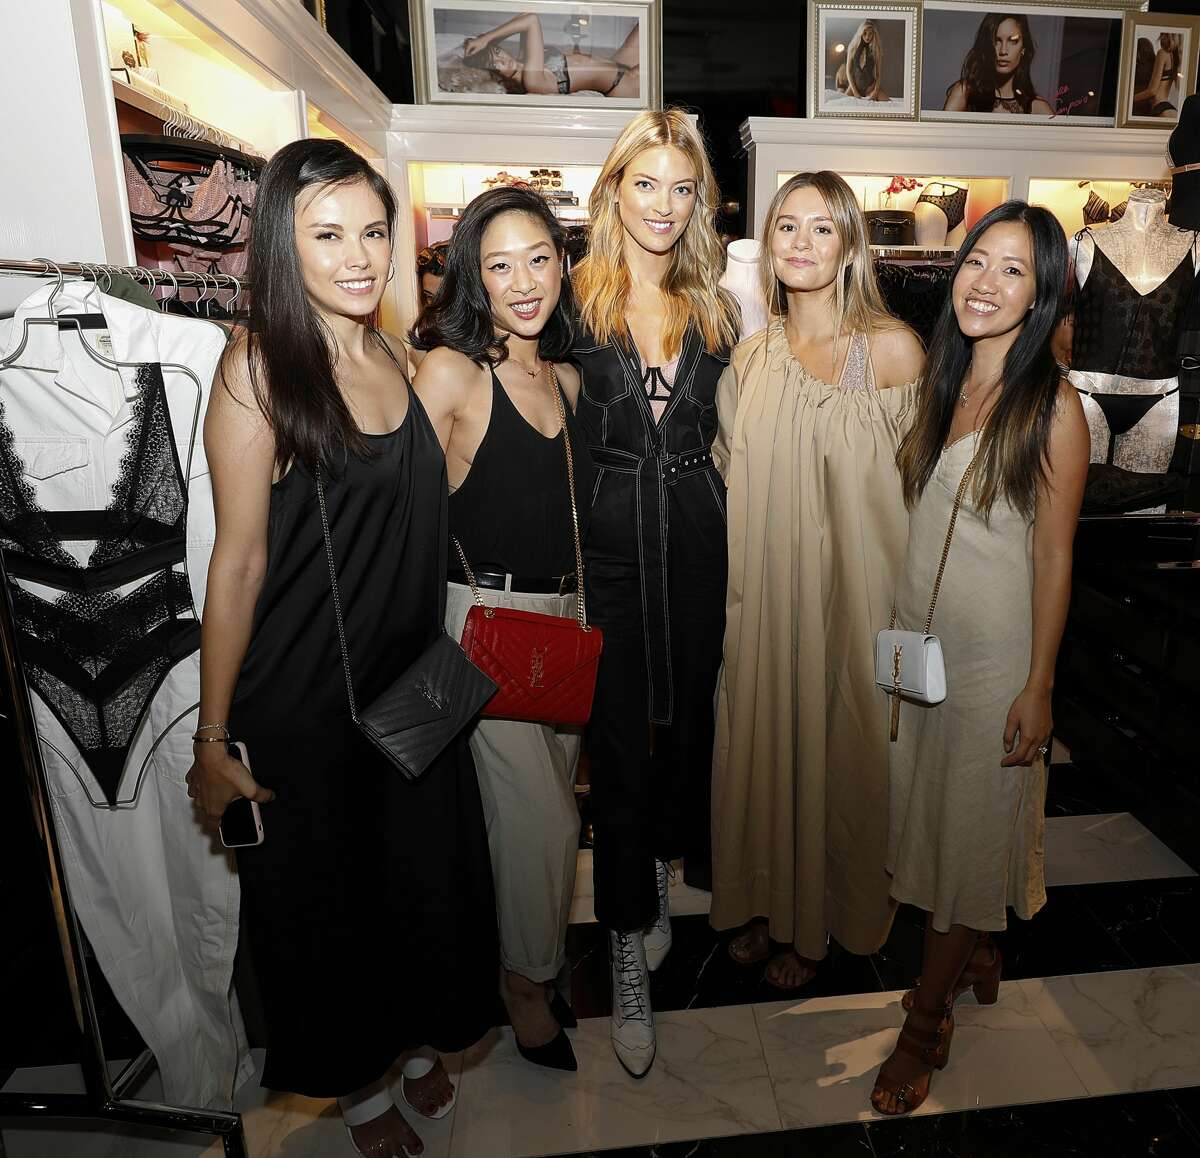 HOUSTON, TEXAS - AUGUST 08: Angel Martha Hunt and guests attend as Victoria's Secret debuts new Fall Collection. (Photo by Bob Levey/Getty Images for Victoria's Secret)